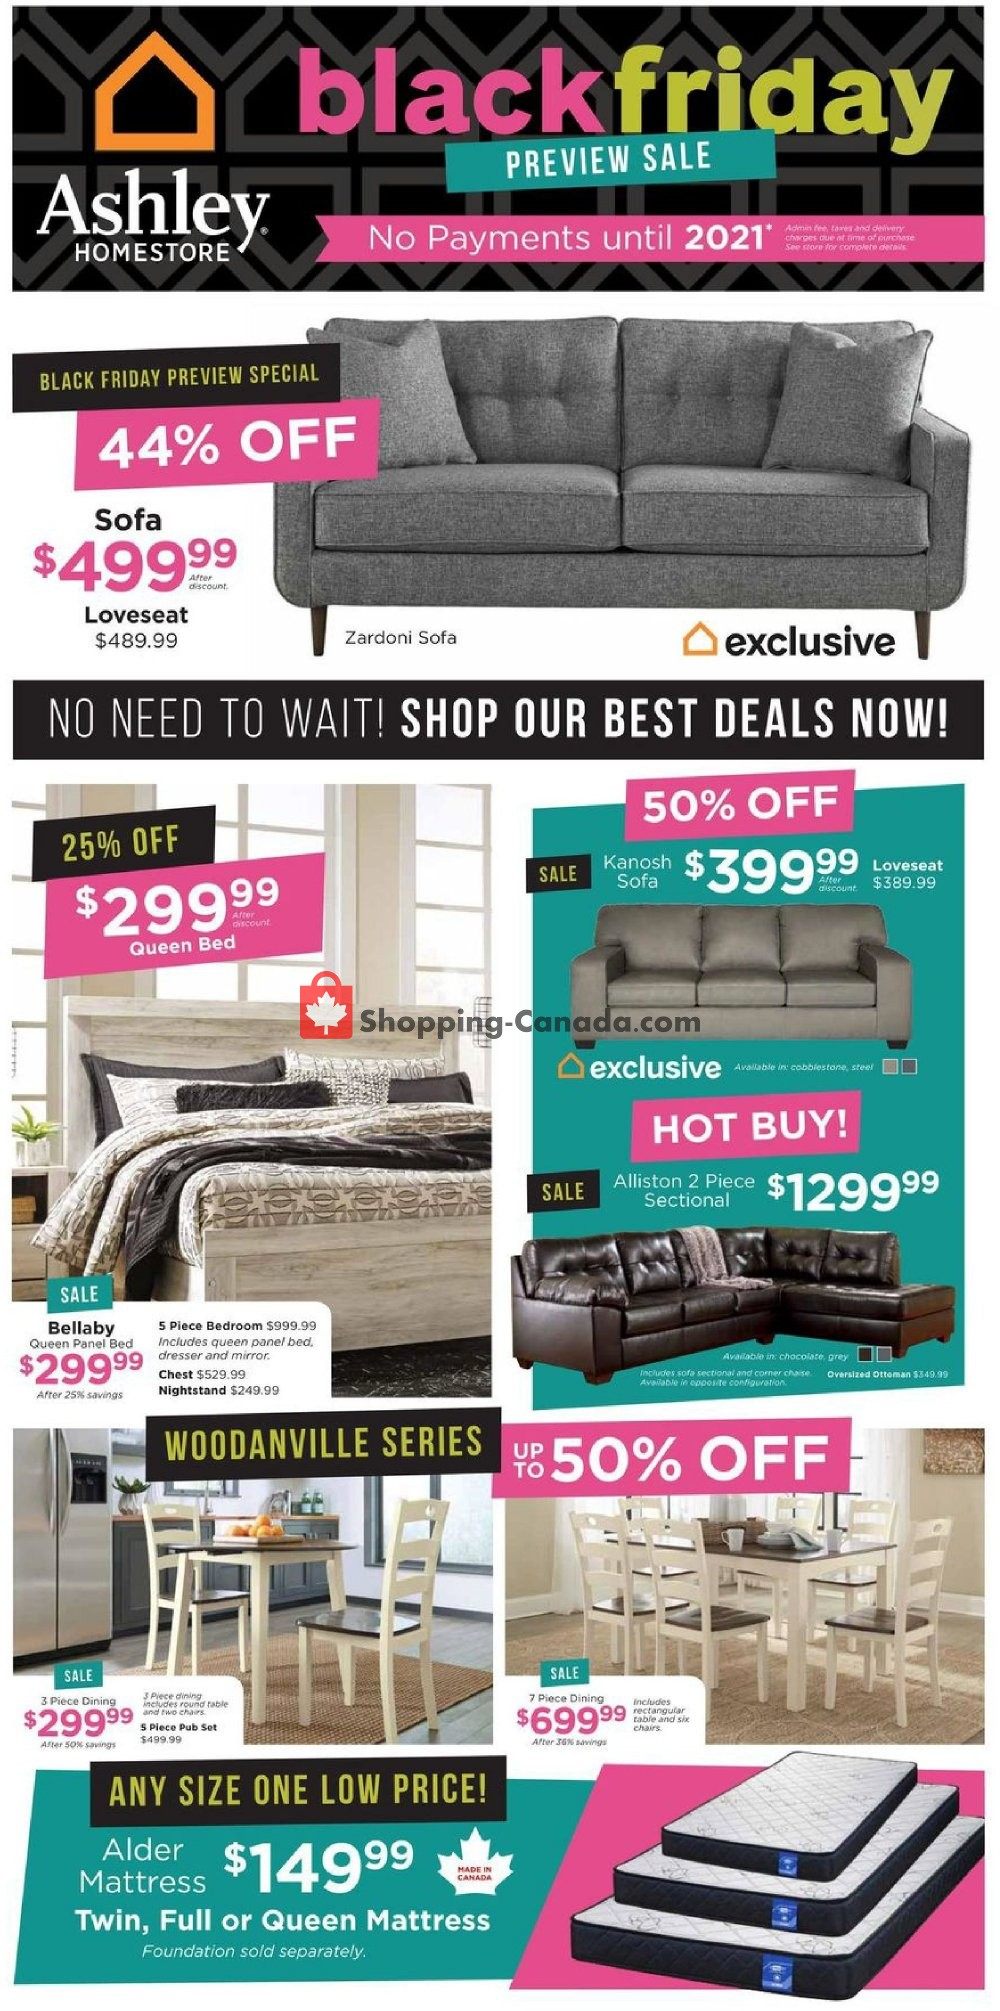 Ashley Homestore Canada Flyer Black Friday Preview Sale On November 14 November 27 2019 Shopping Canada